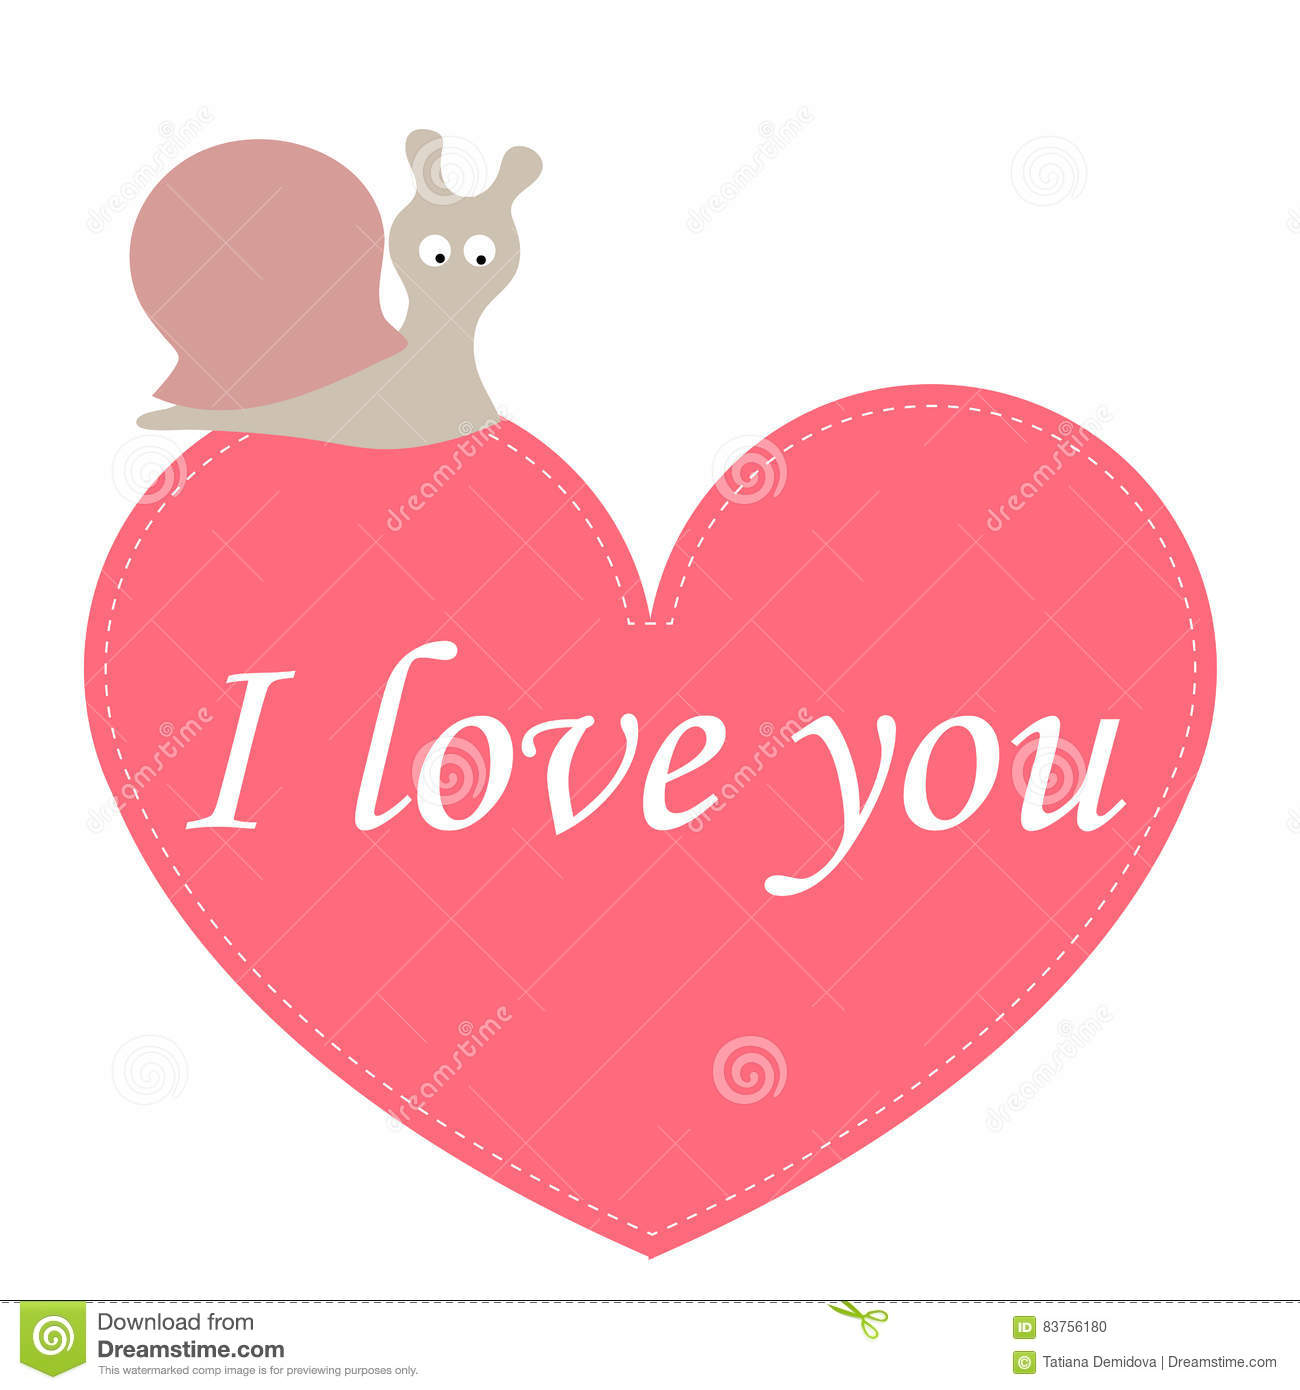 Greeting Card I Love You With A Heart And A Cute Snail Template